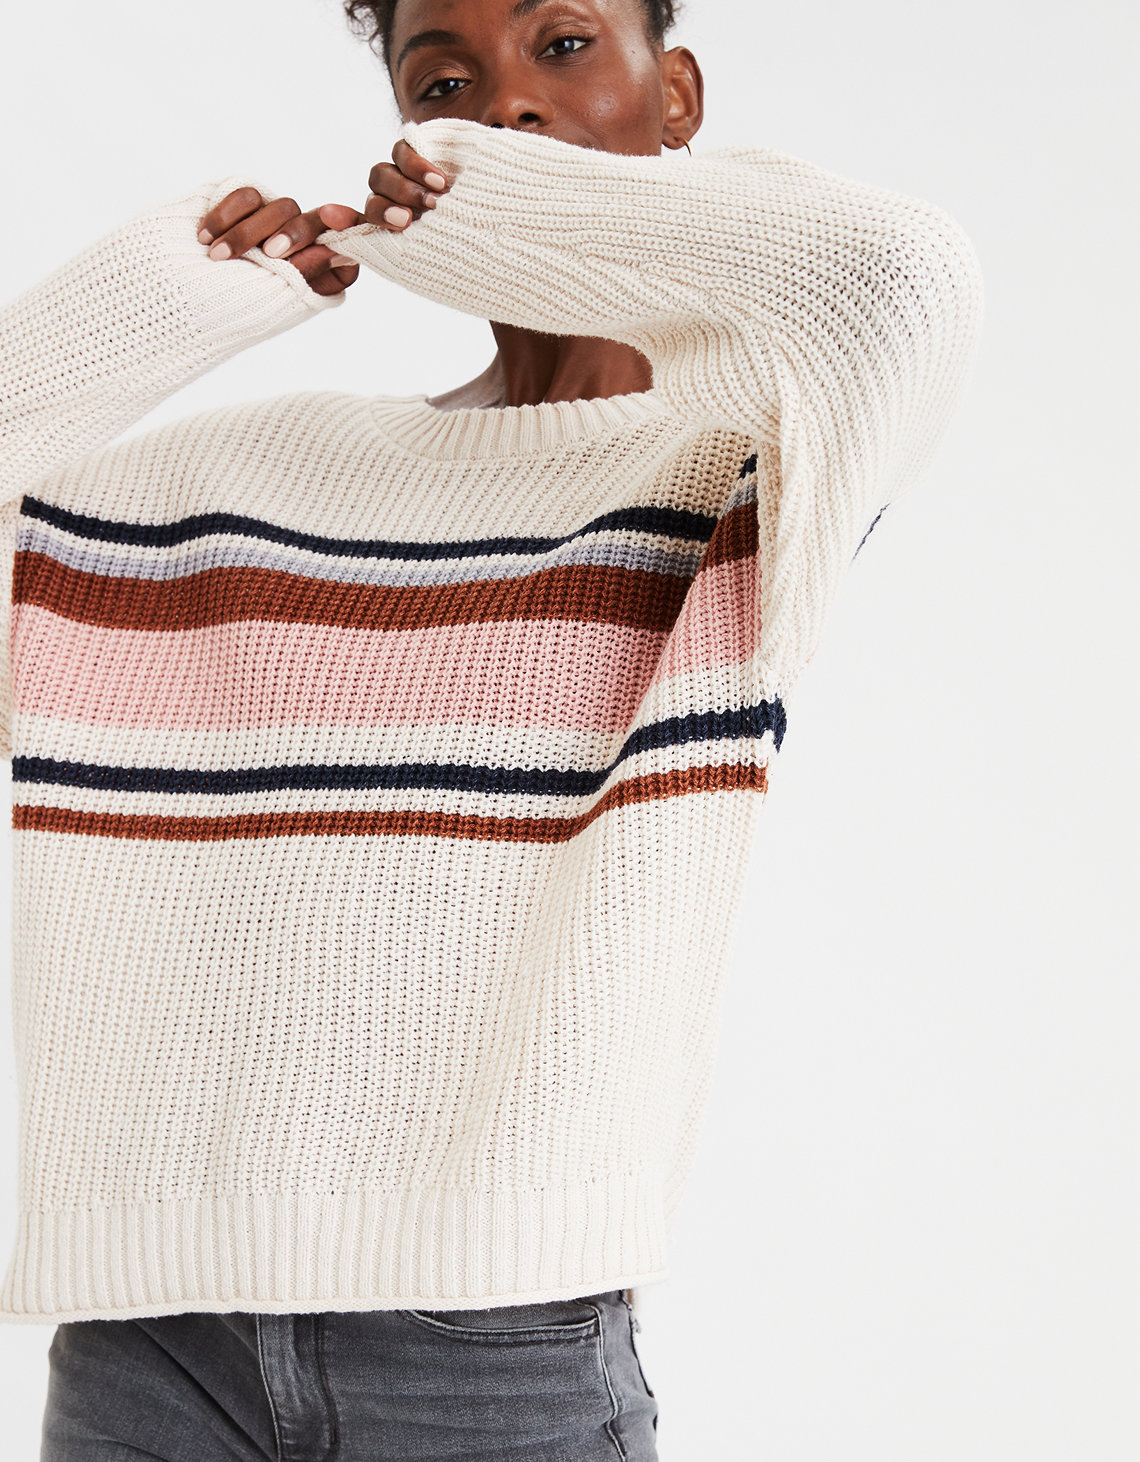 Ae Striped Crew Neck Oversized Sweater by American Eagle Outfitters